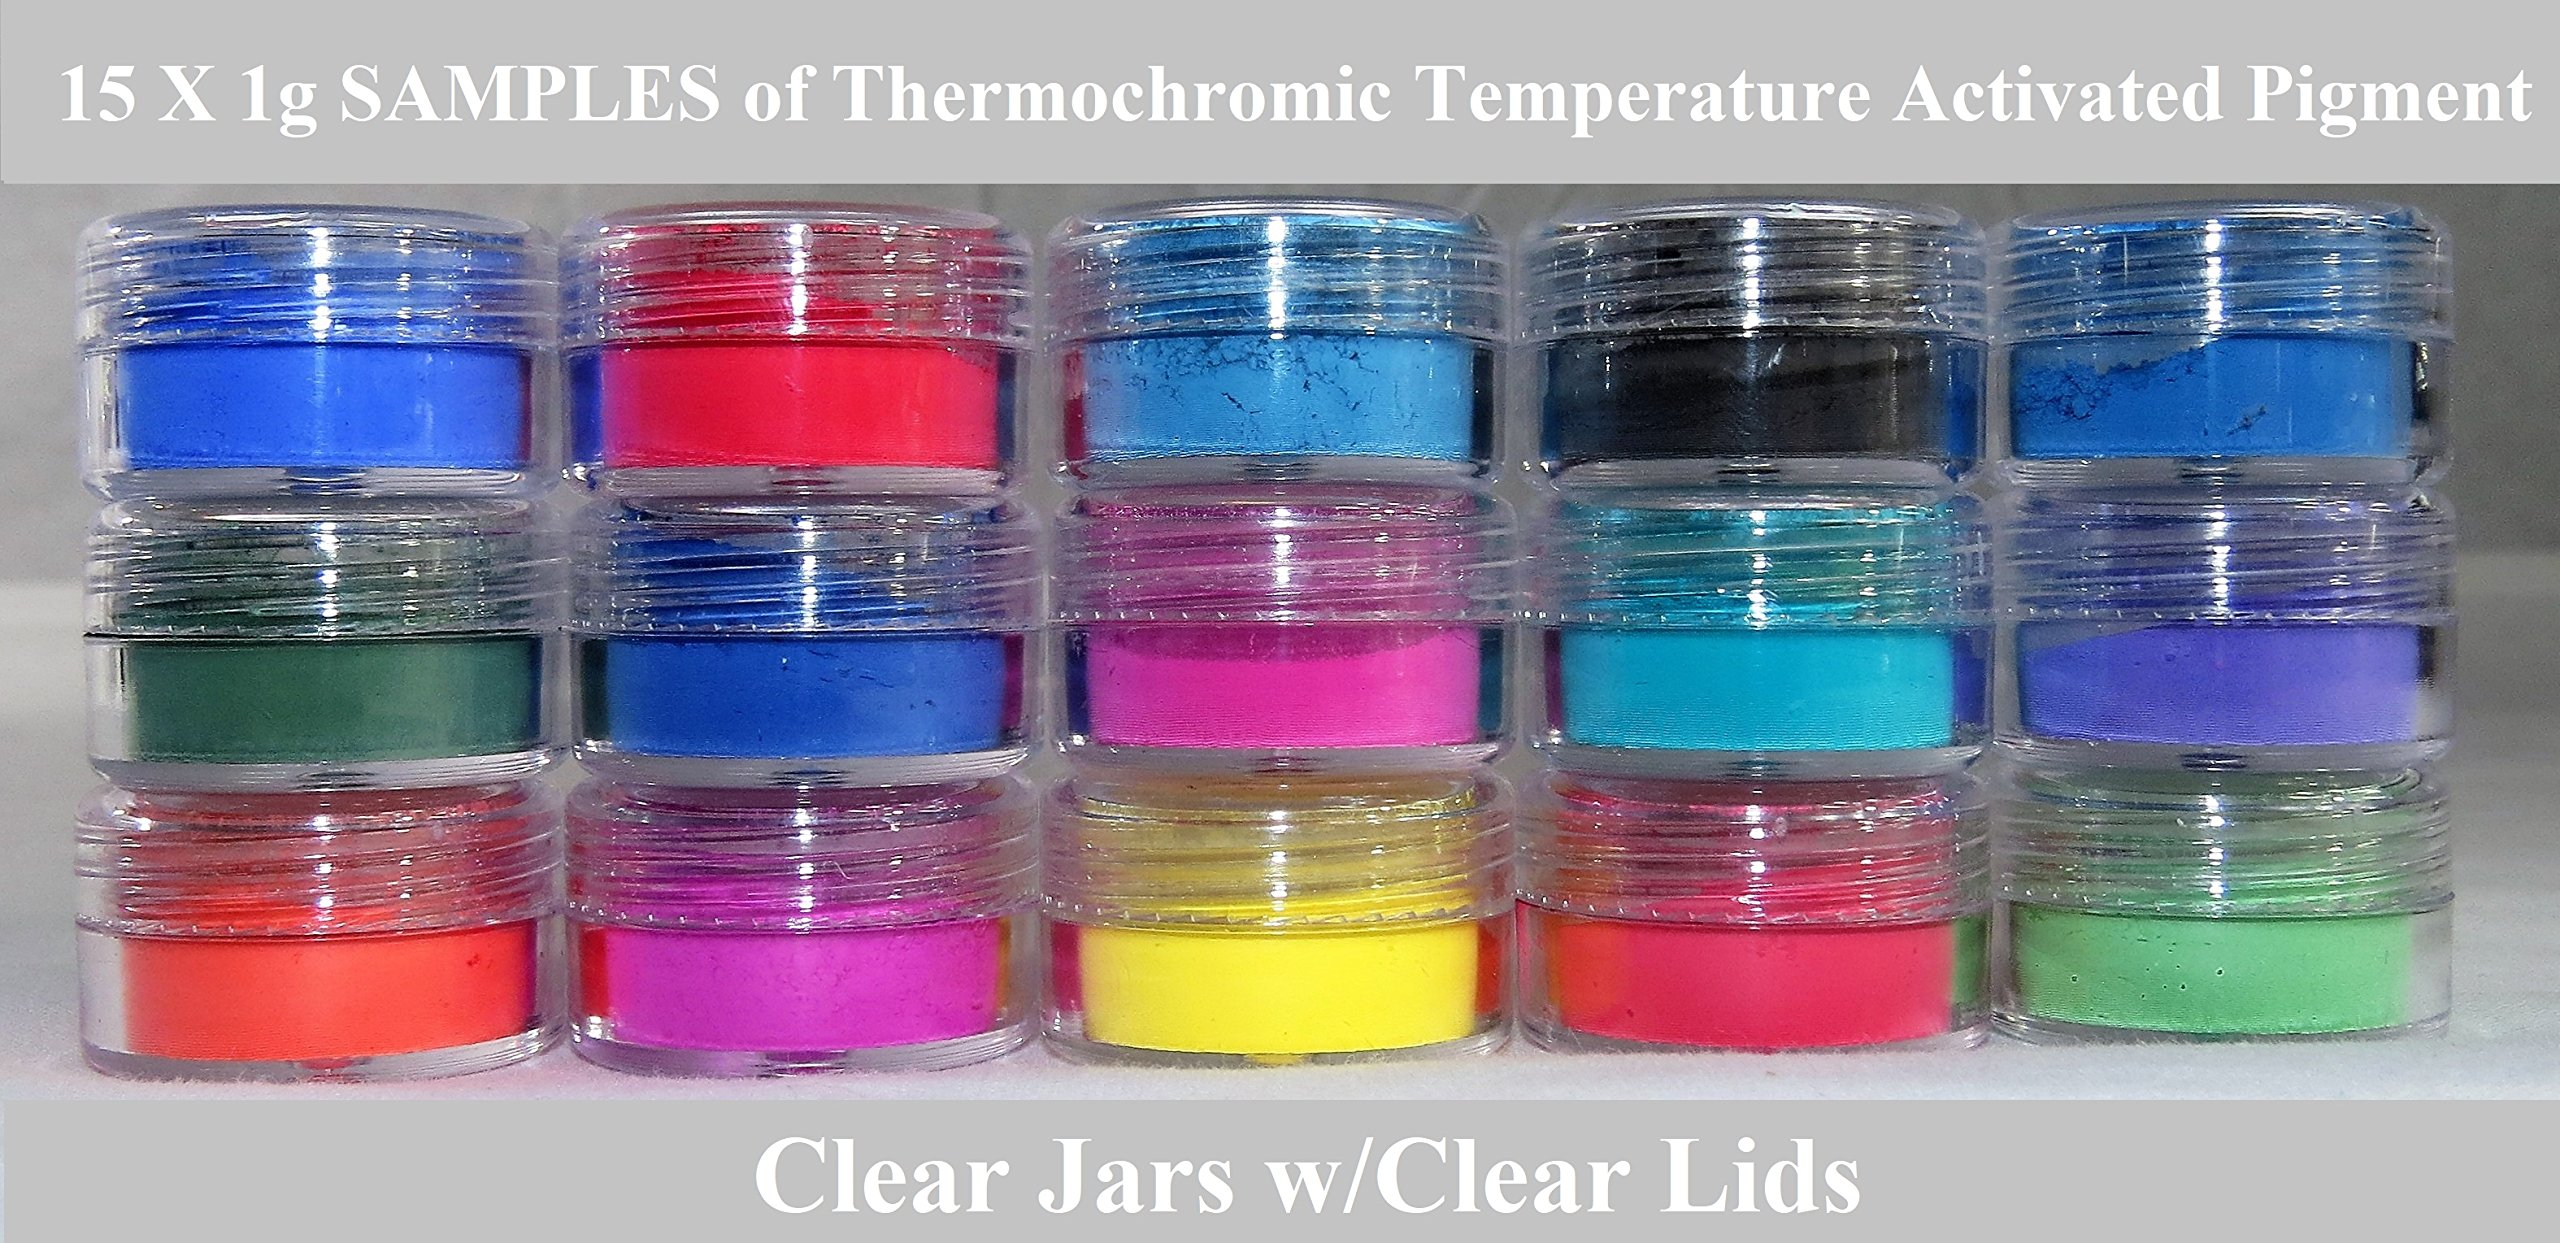 ThermoChromic Temperature Activated Pigment that changes at 88⁰F (31 ⁰C) - Great for making color-changing slime, Paint, Nail Polish, Fabric Art and More (15 x 1g Samples, Mixed Colors)